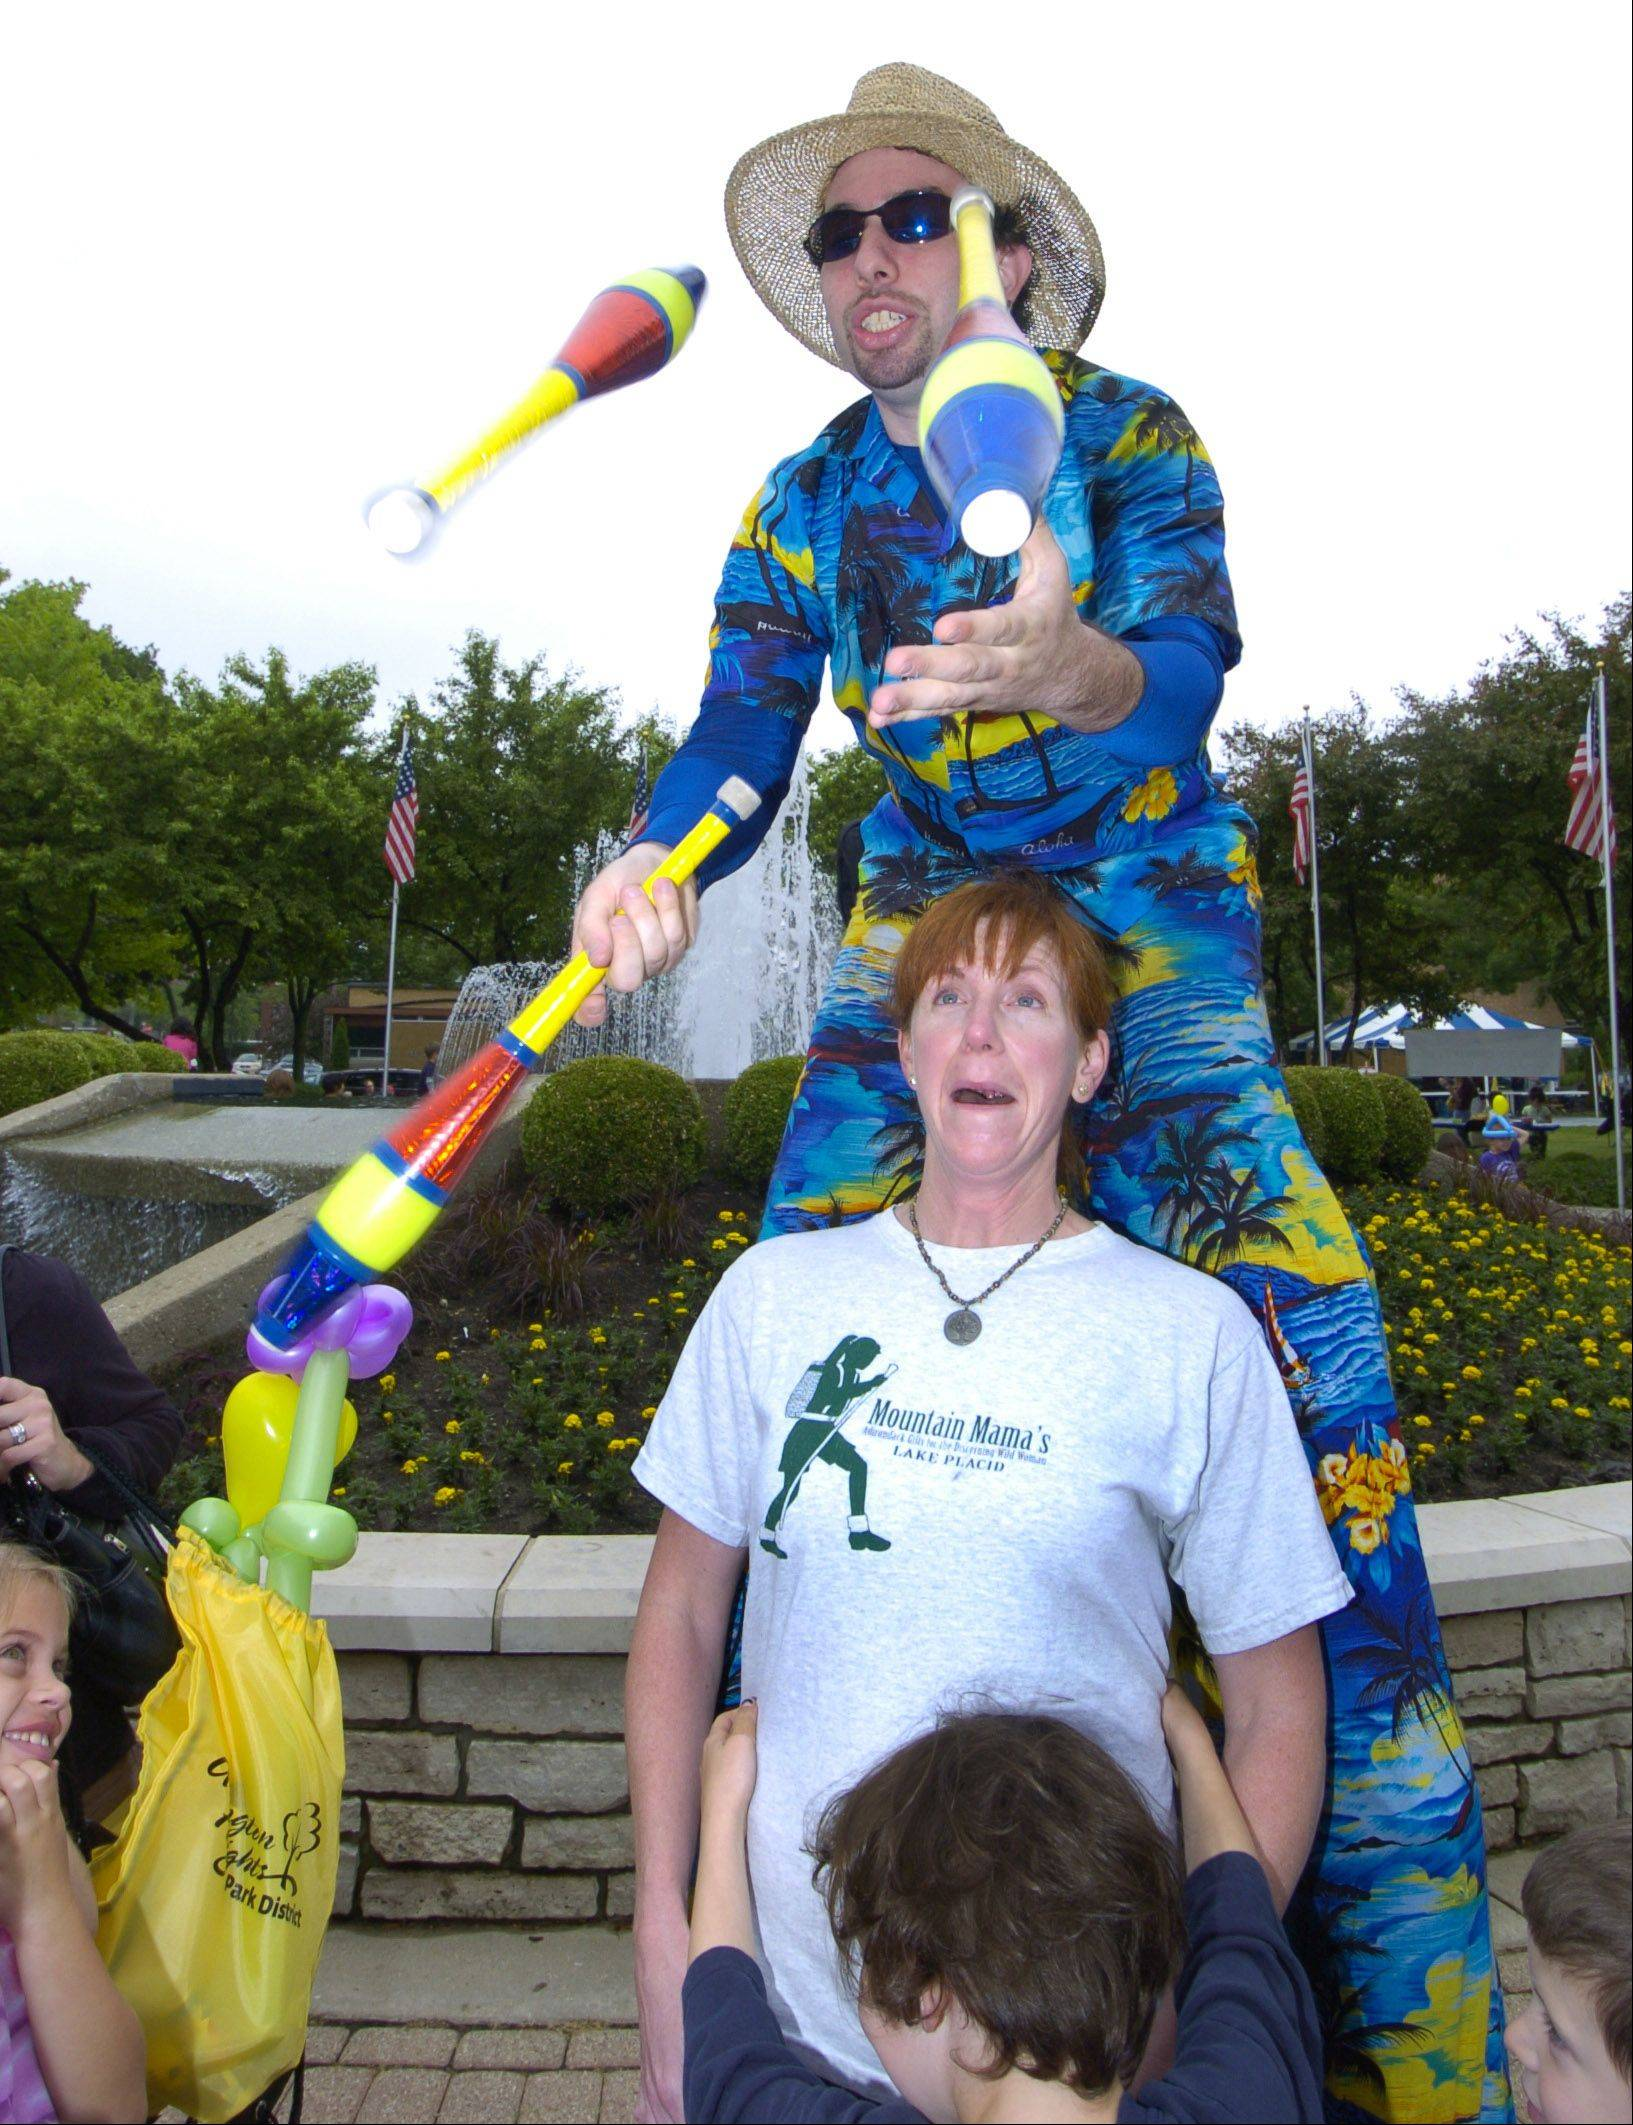 Stilt-walker Jason Kollum juggles just above Arlington Heights resident Gretchen Benne's head during a previous Picnic in the Park in Arlington Heights.